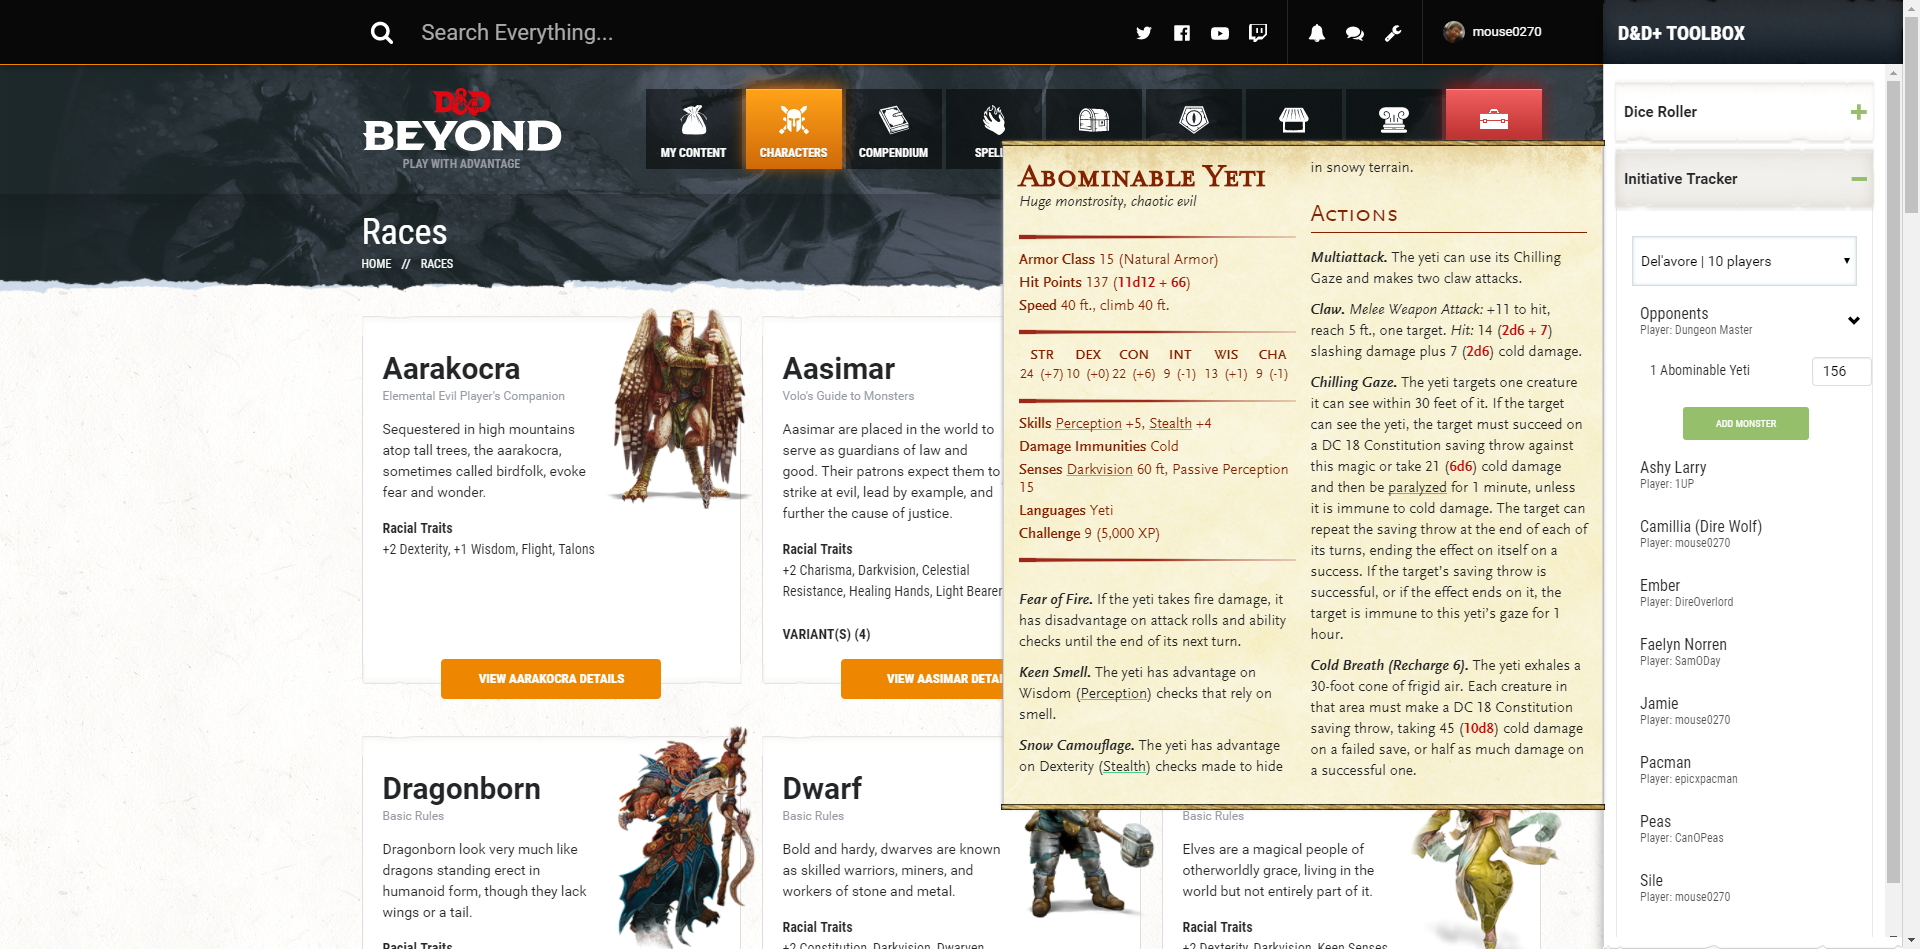 D&D Toolbox Chrome Extension - General Discussion - D&D Beyond